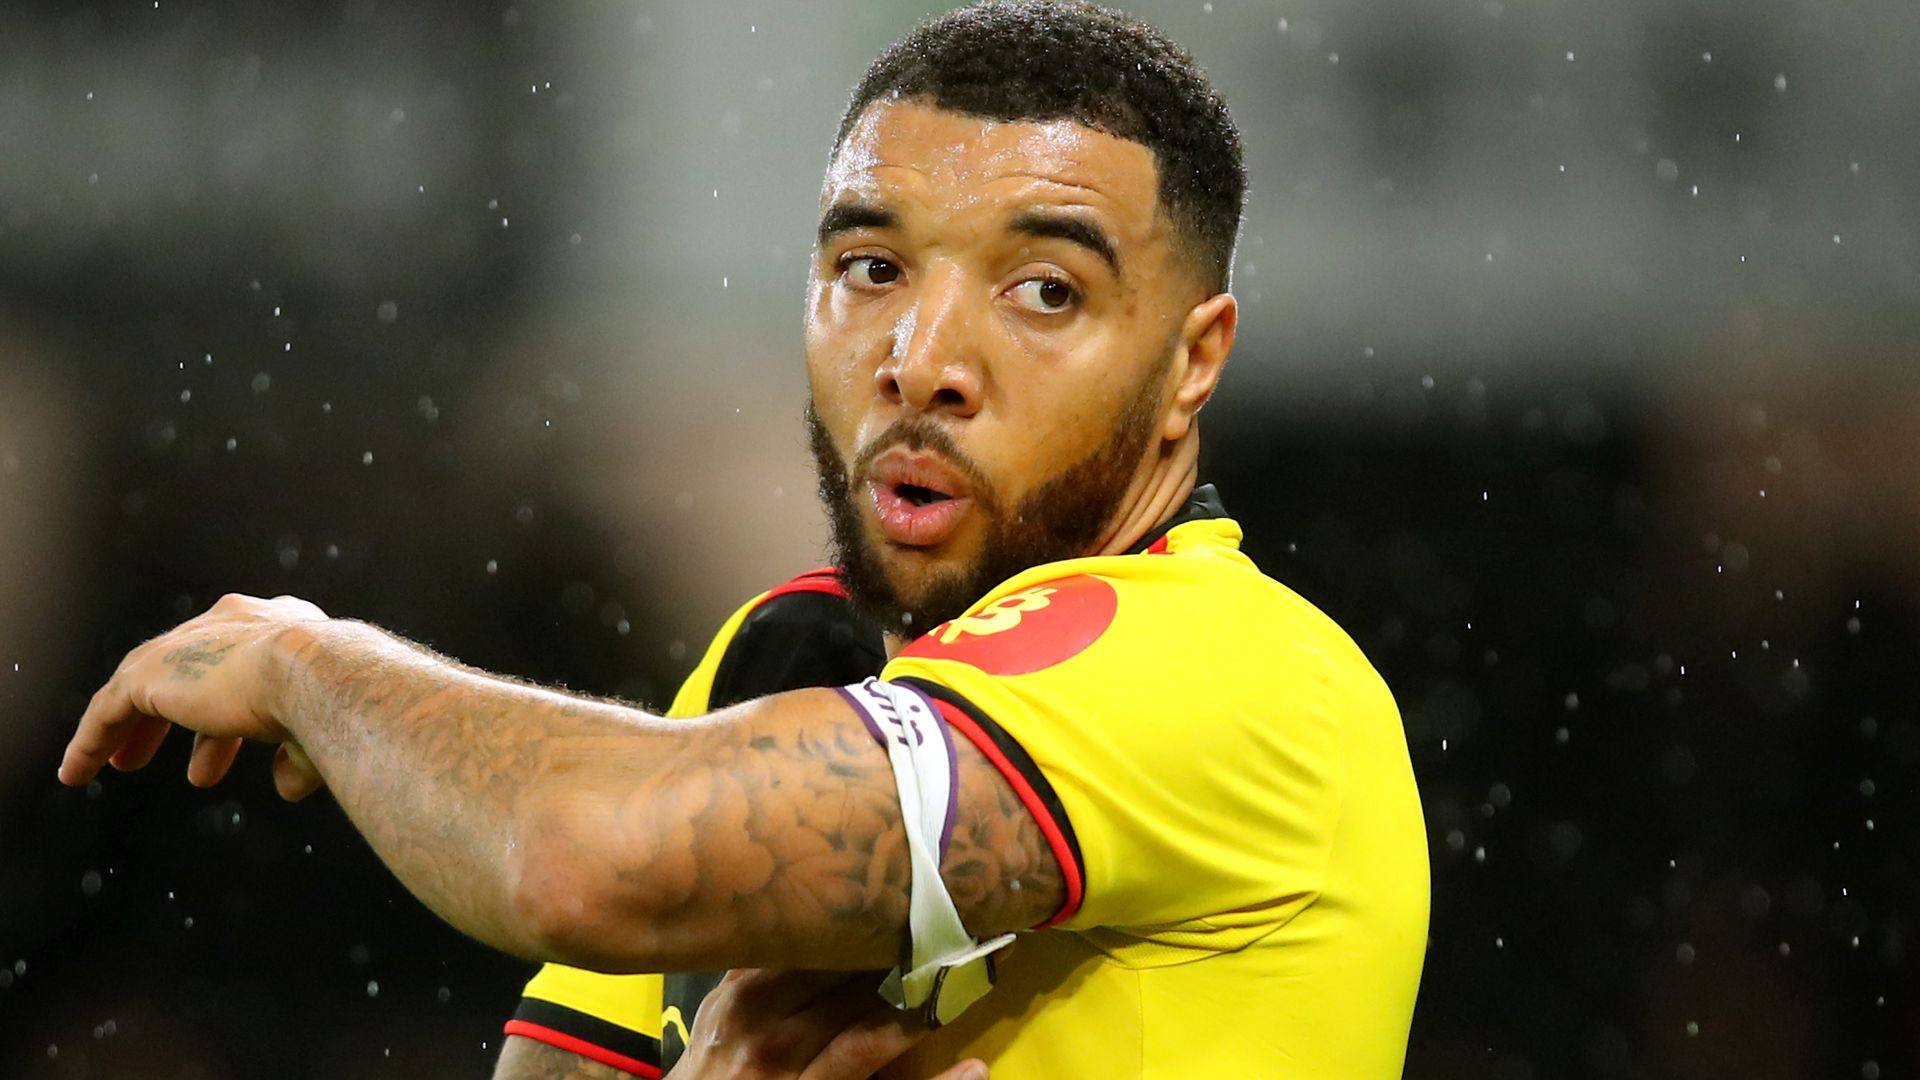 Deeney doesn't train but expected to take test